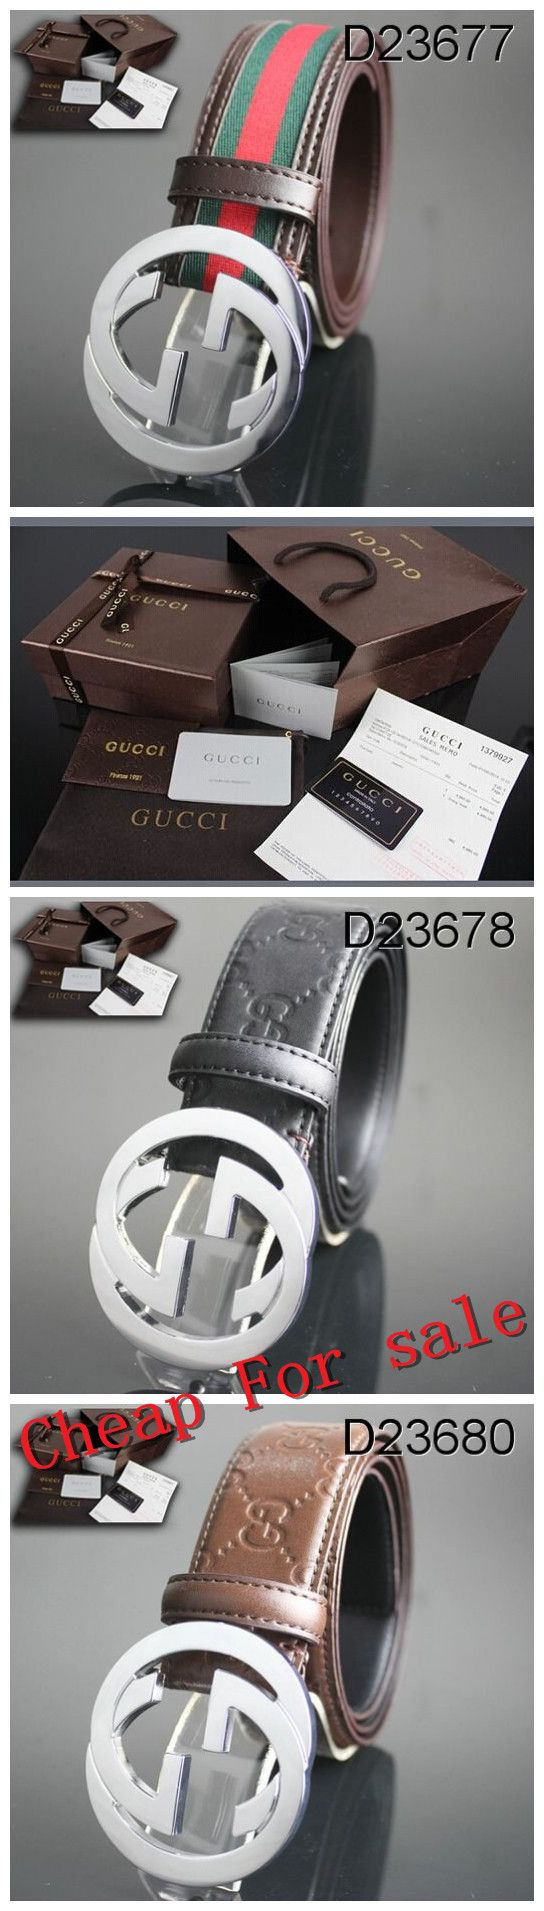 Wholesale Gucci belts,cheap gucci mens belts,Gucci leather belts for sale,gucci belt outlet Gucci Belt Gucci.100% Leather. Gucci belt men malaysia Gucci Interlocking G Guccissima Leather Belt Gucci Belt Beige/Blue Gucci Belt with Dark Brown Guccima Leather and Interlocking G Buckle Replica Gucci Belts,Cheap Fendi Belts,LV Belts Outlet #Gucci #leather #Belt #follow #fashion $20 for AAA quality $38 for 1:1 quality only on website : http://www.vokshop.com